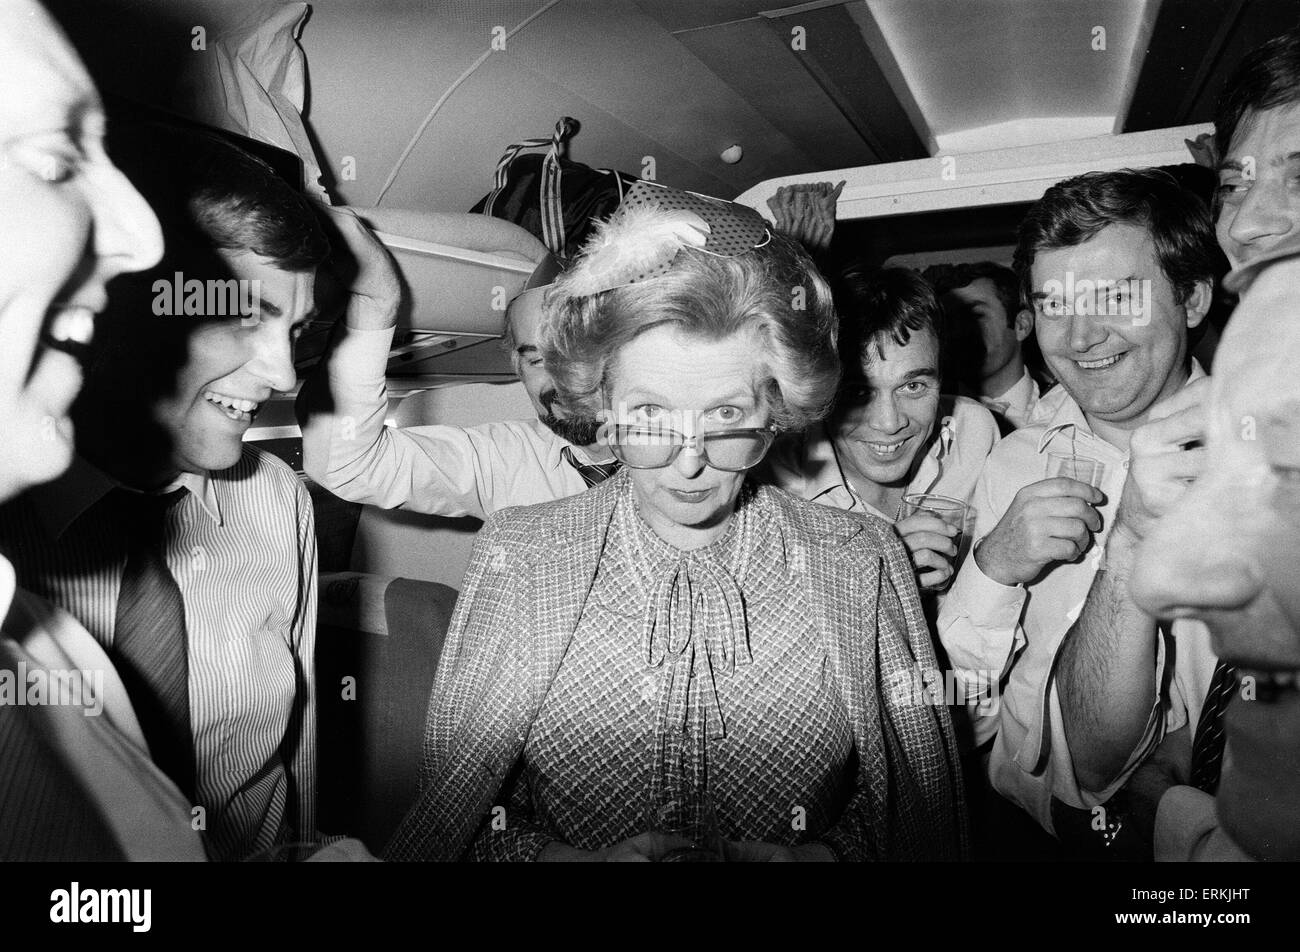 Margaret Thatcher British Prime Minister - December 1984 relaxes at an impromptu party on board the VC-10 plane - Stock Image